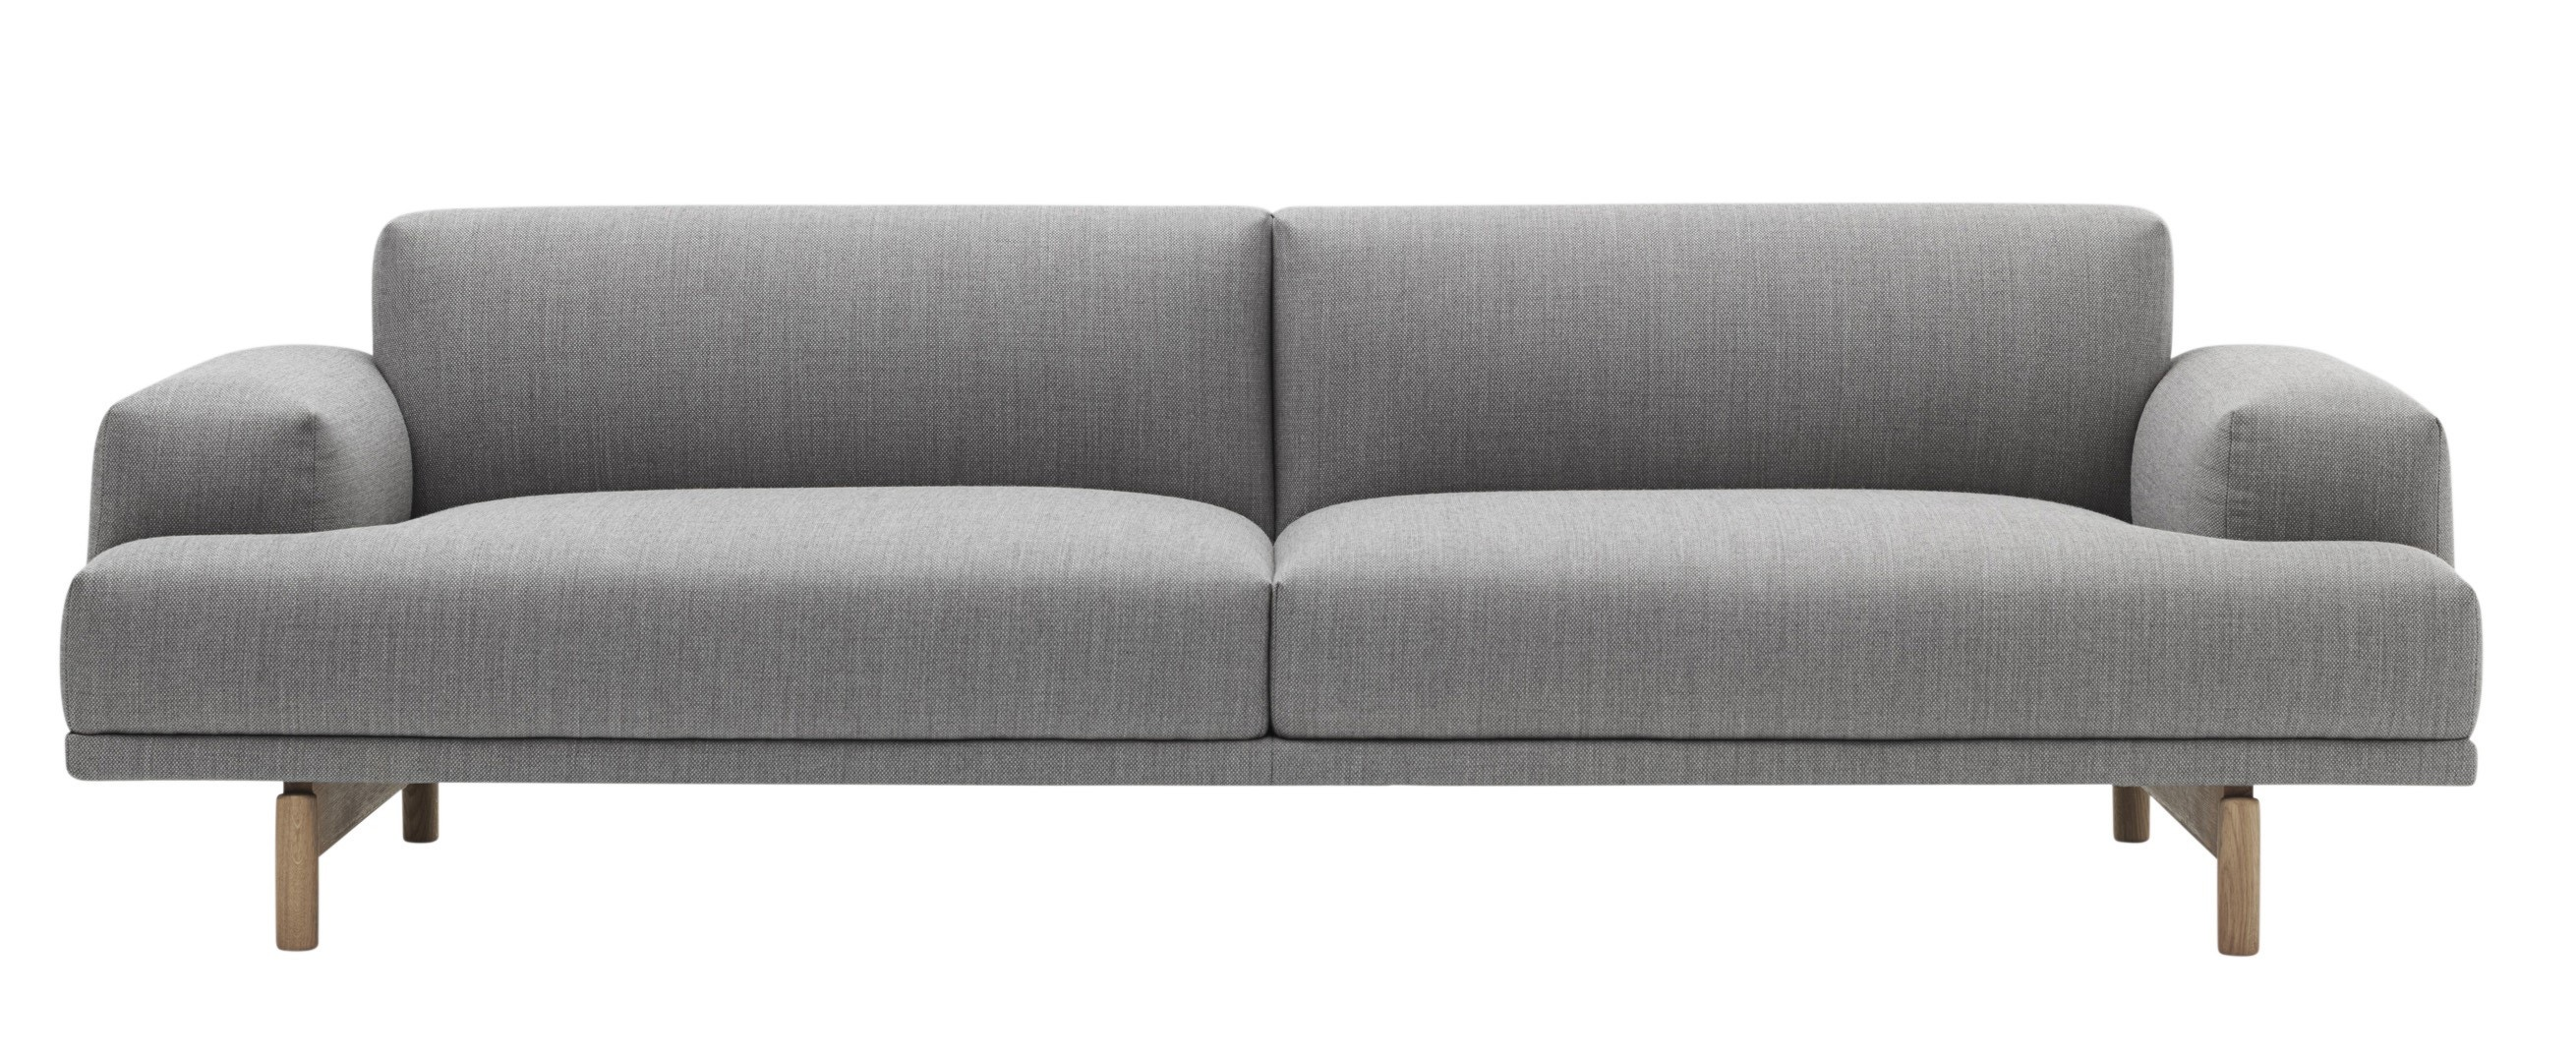 muuto compose 3 seater sofa gr shop canada. Black Bedroom Furniture Sets. Home Design Ideas